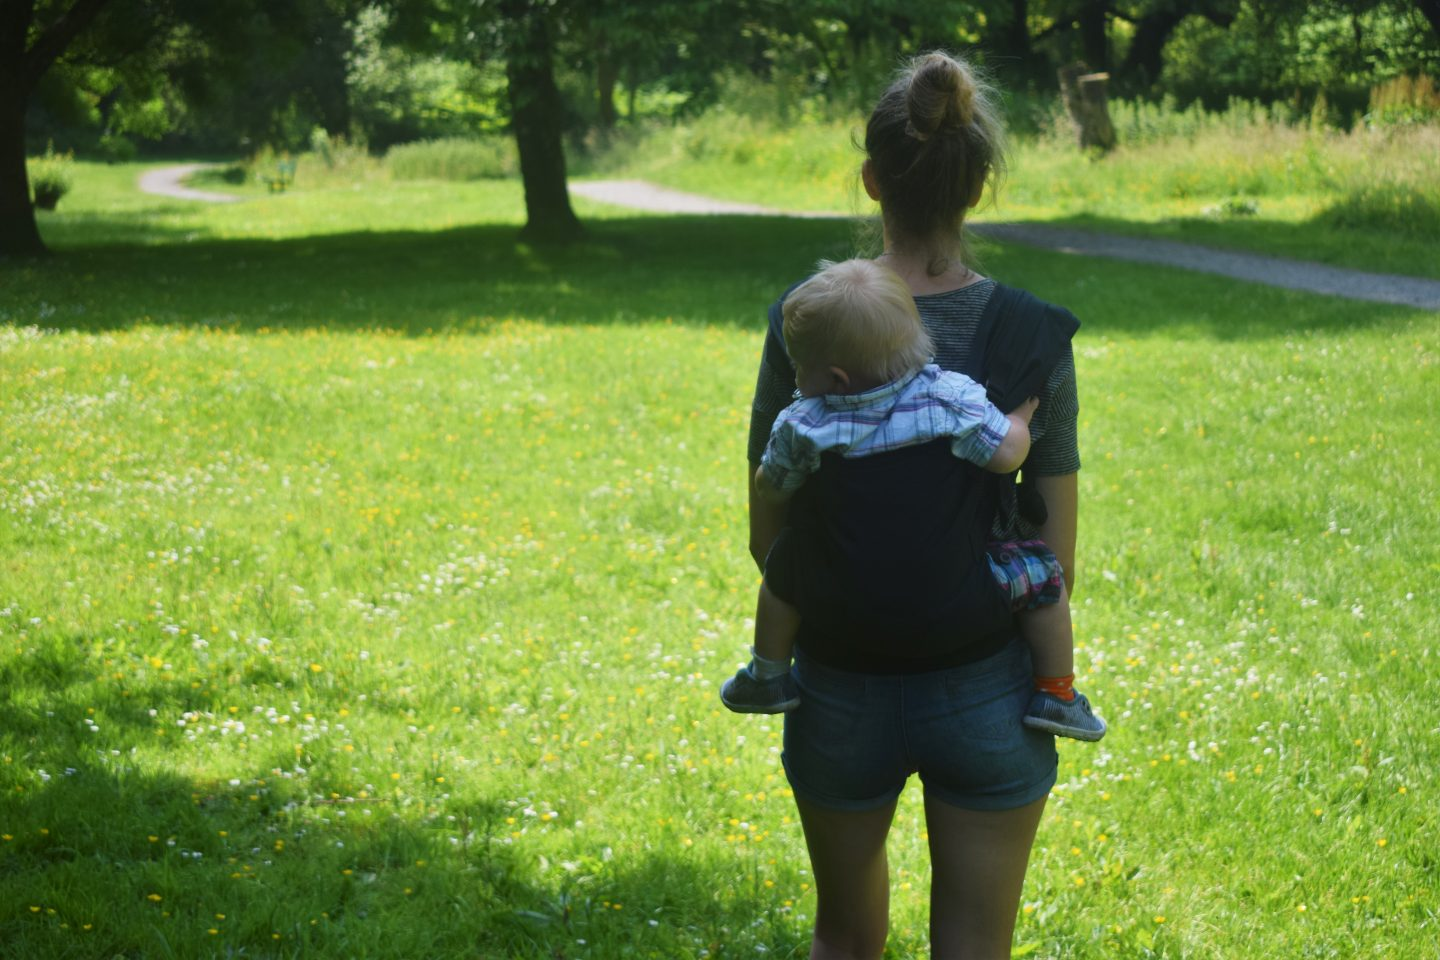 5 tasks made easier by babywearing